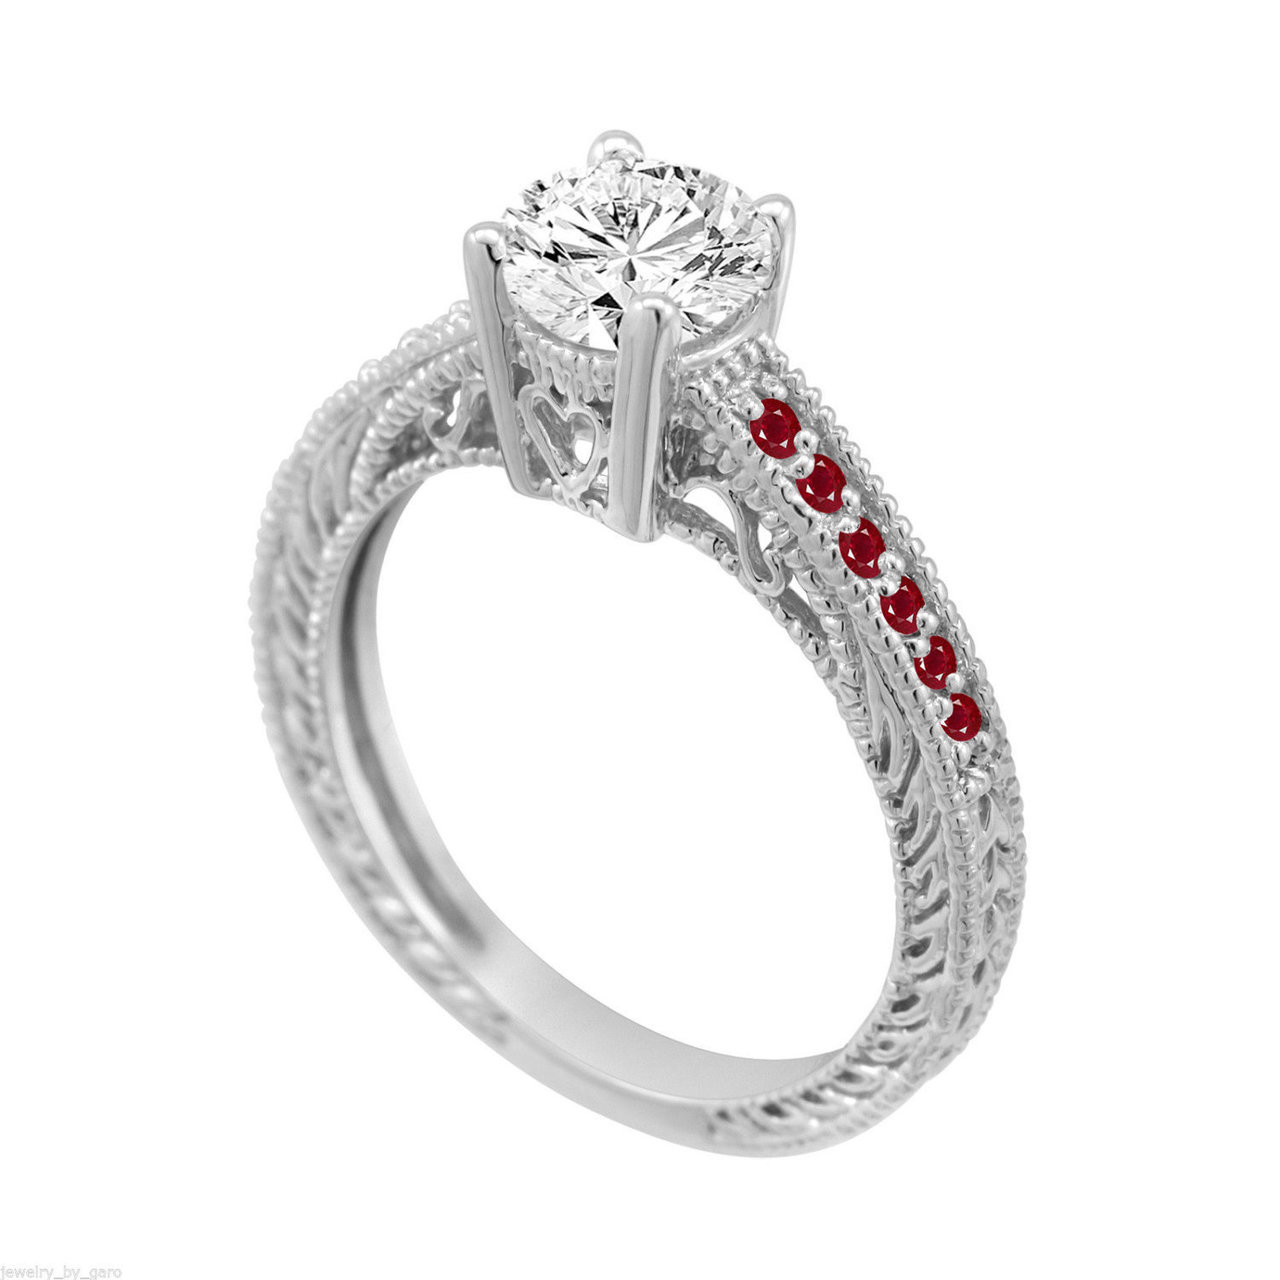 Ruby Wedding Rings.Diamond Rubies Engagement Ring Vintage Ruby Wedding Ring Certified 0 70 Carat 14k White Gold Unique Antique Style Handmade